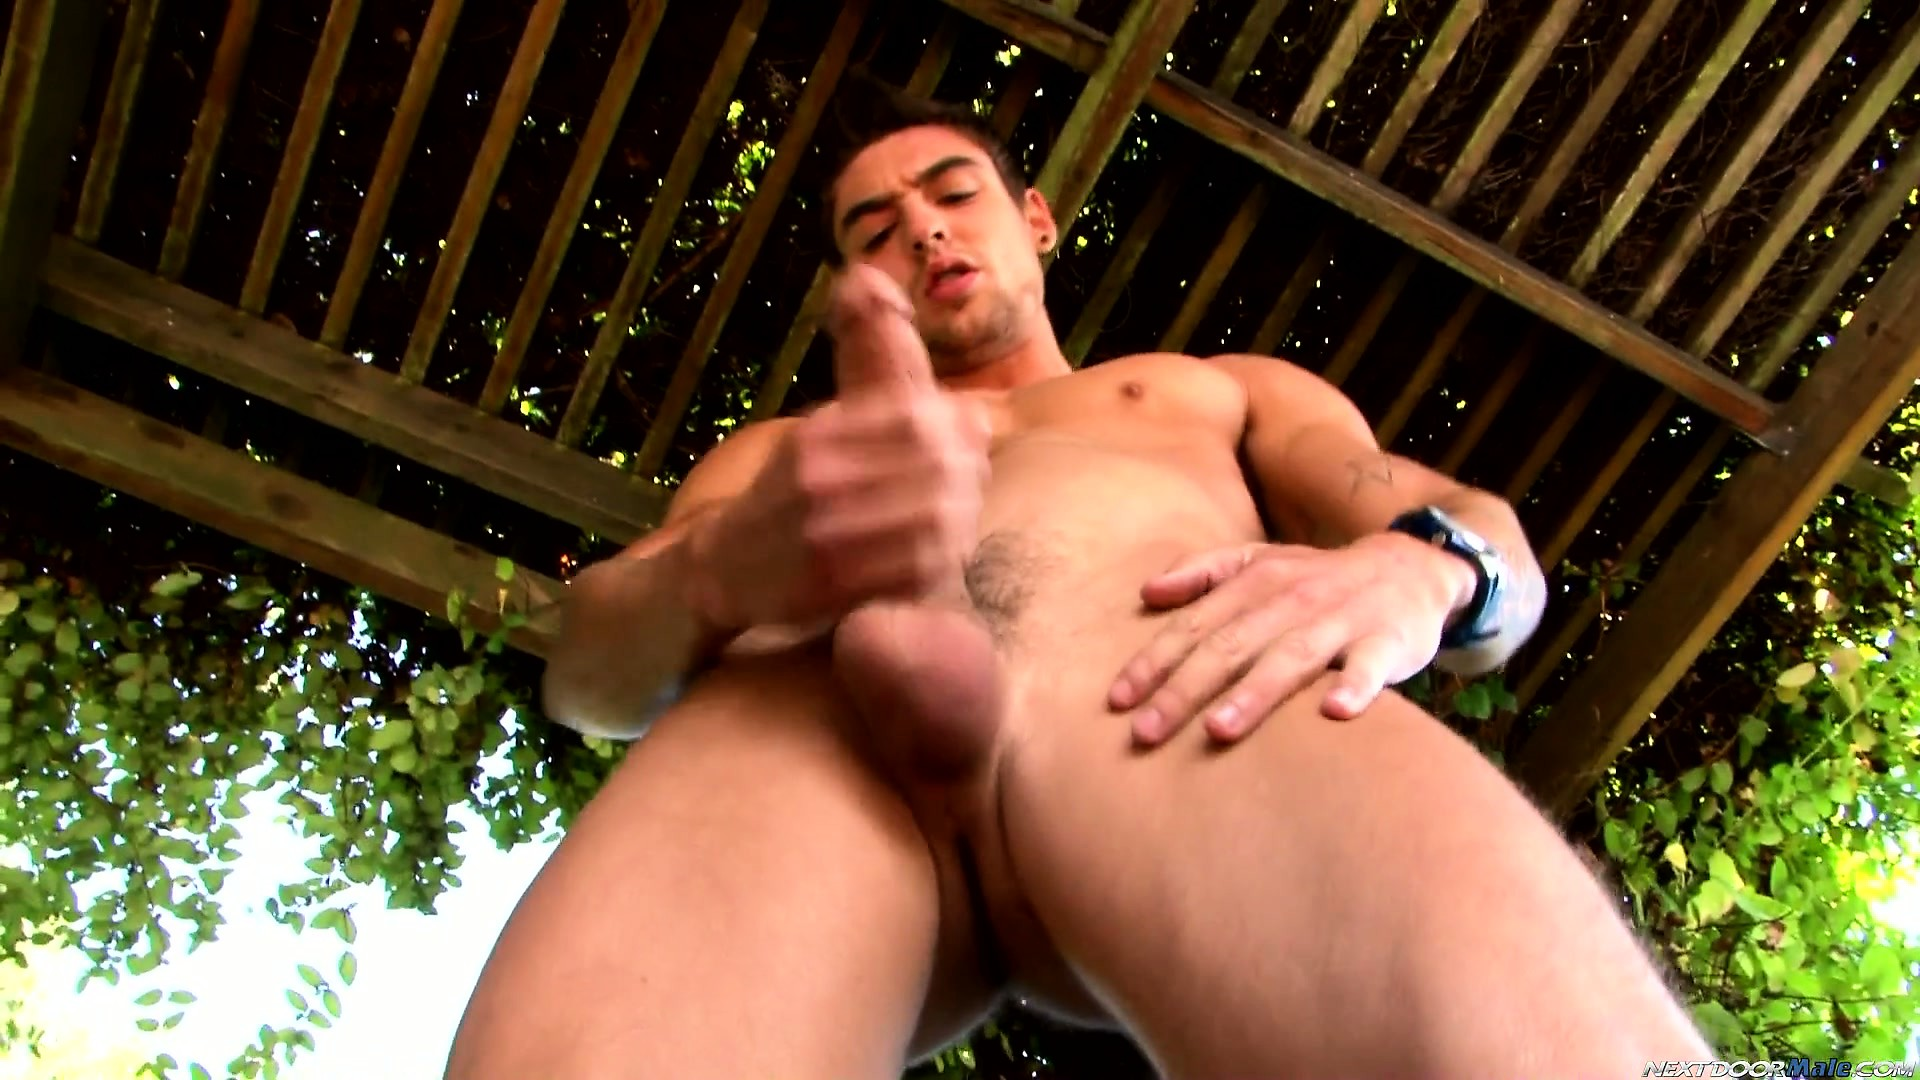 Porn Tube of Johnny Torque Bends Over To Jerk Then Stands Up Straight To Pump It